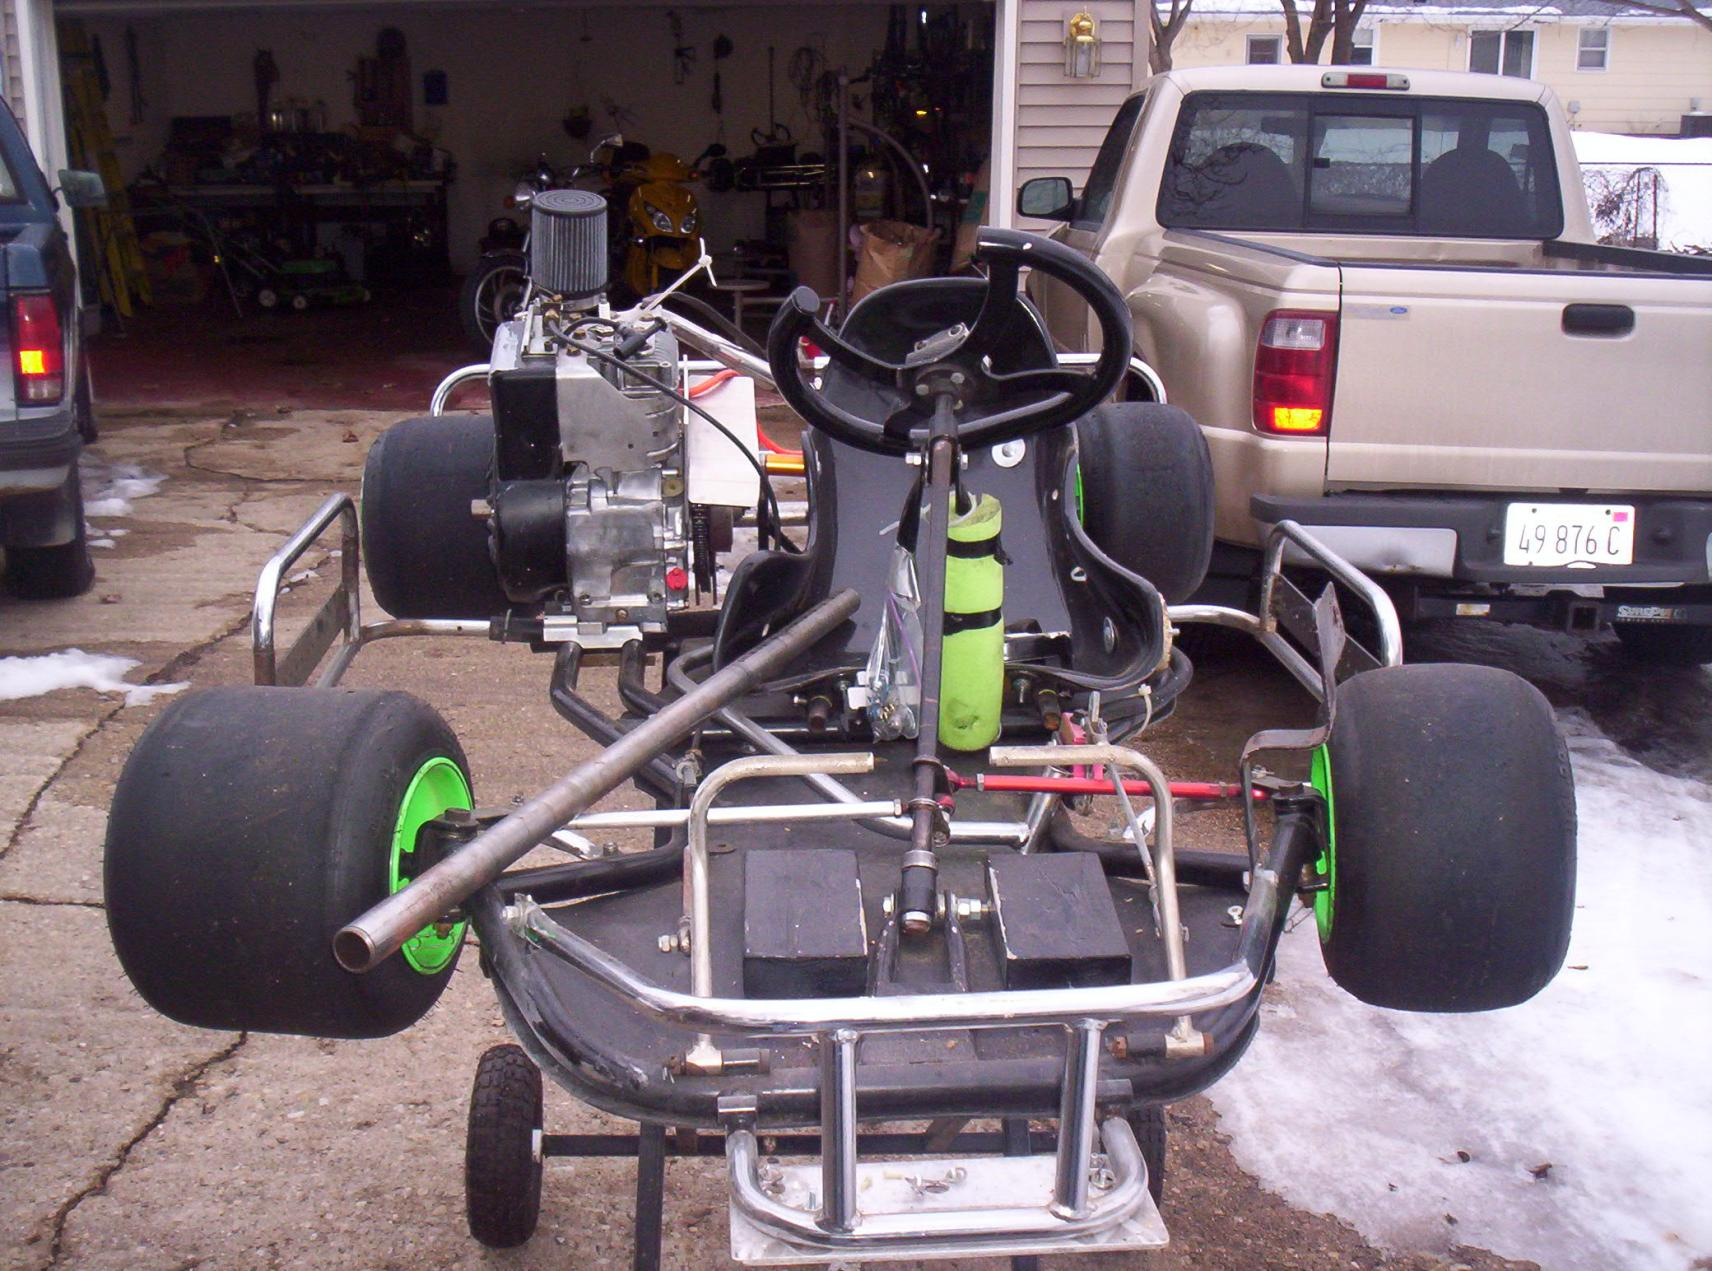 Racing Go Karts 1 kid kart 1 fullsize kart - R/C Tech Forums